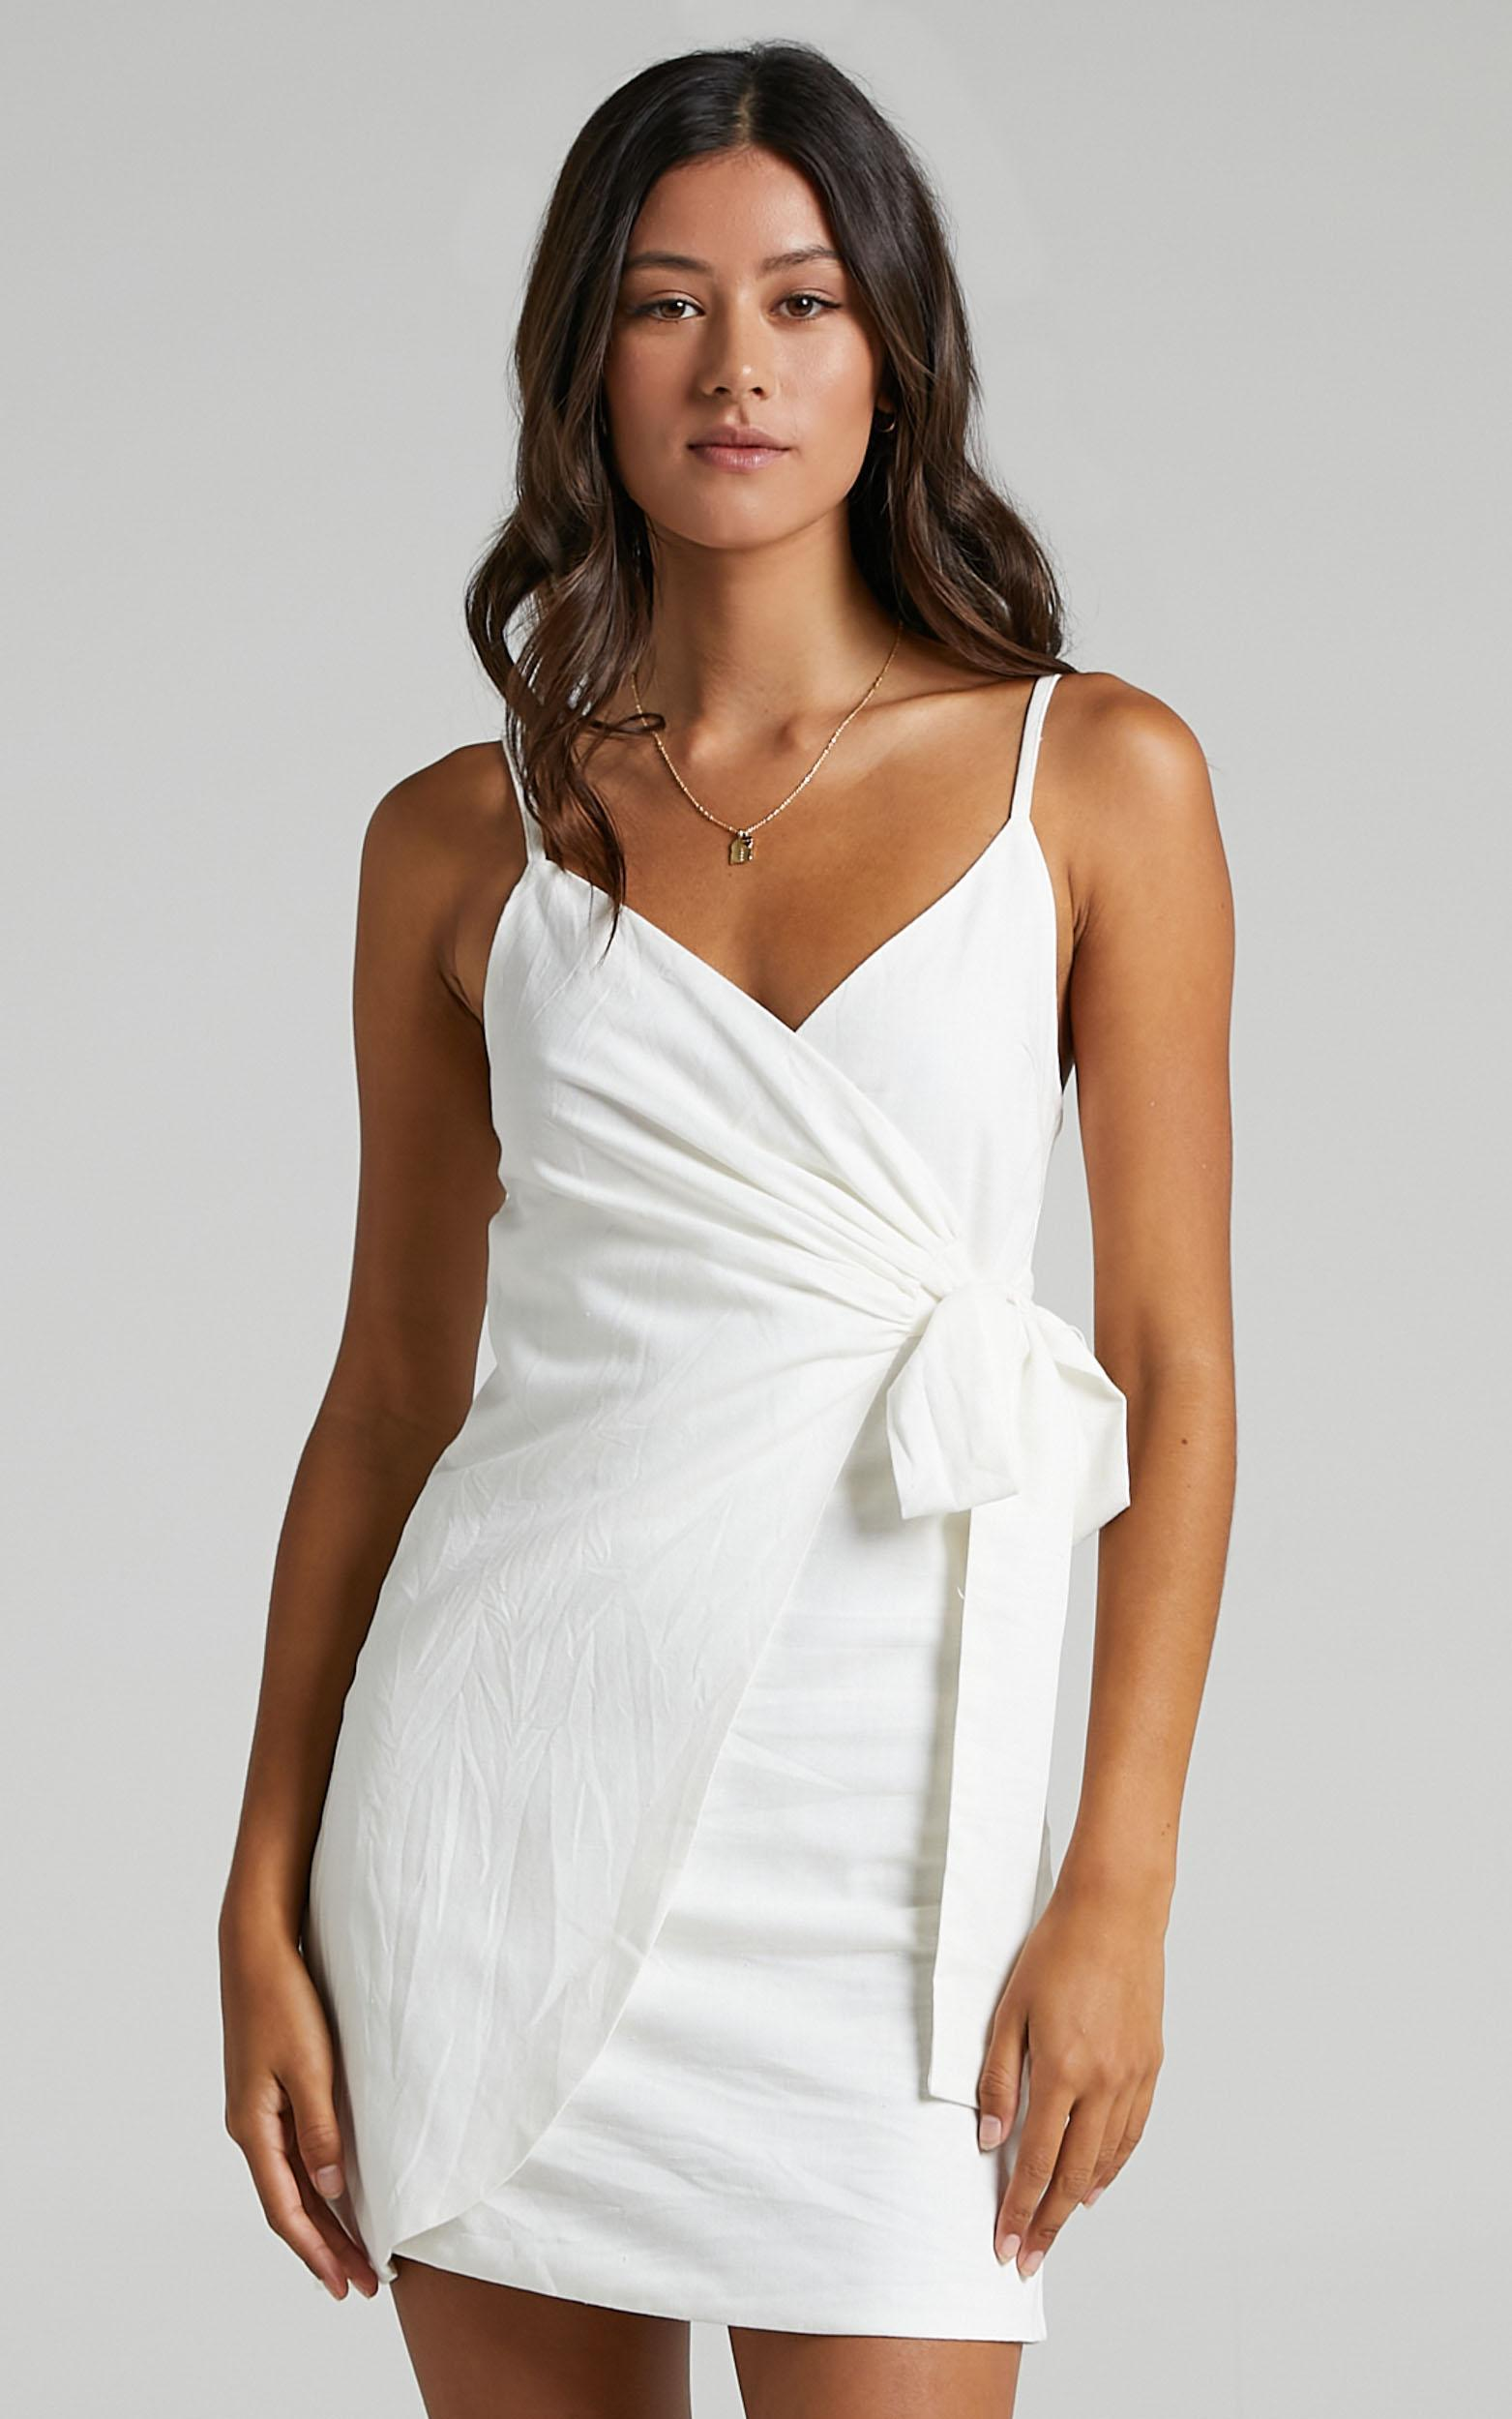 Letting Down Easy Dress in White Linen Look - 04, WHT3, hi-res image number null